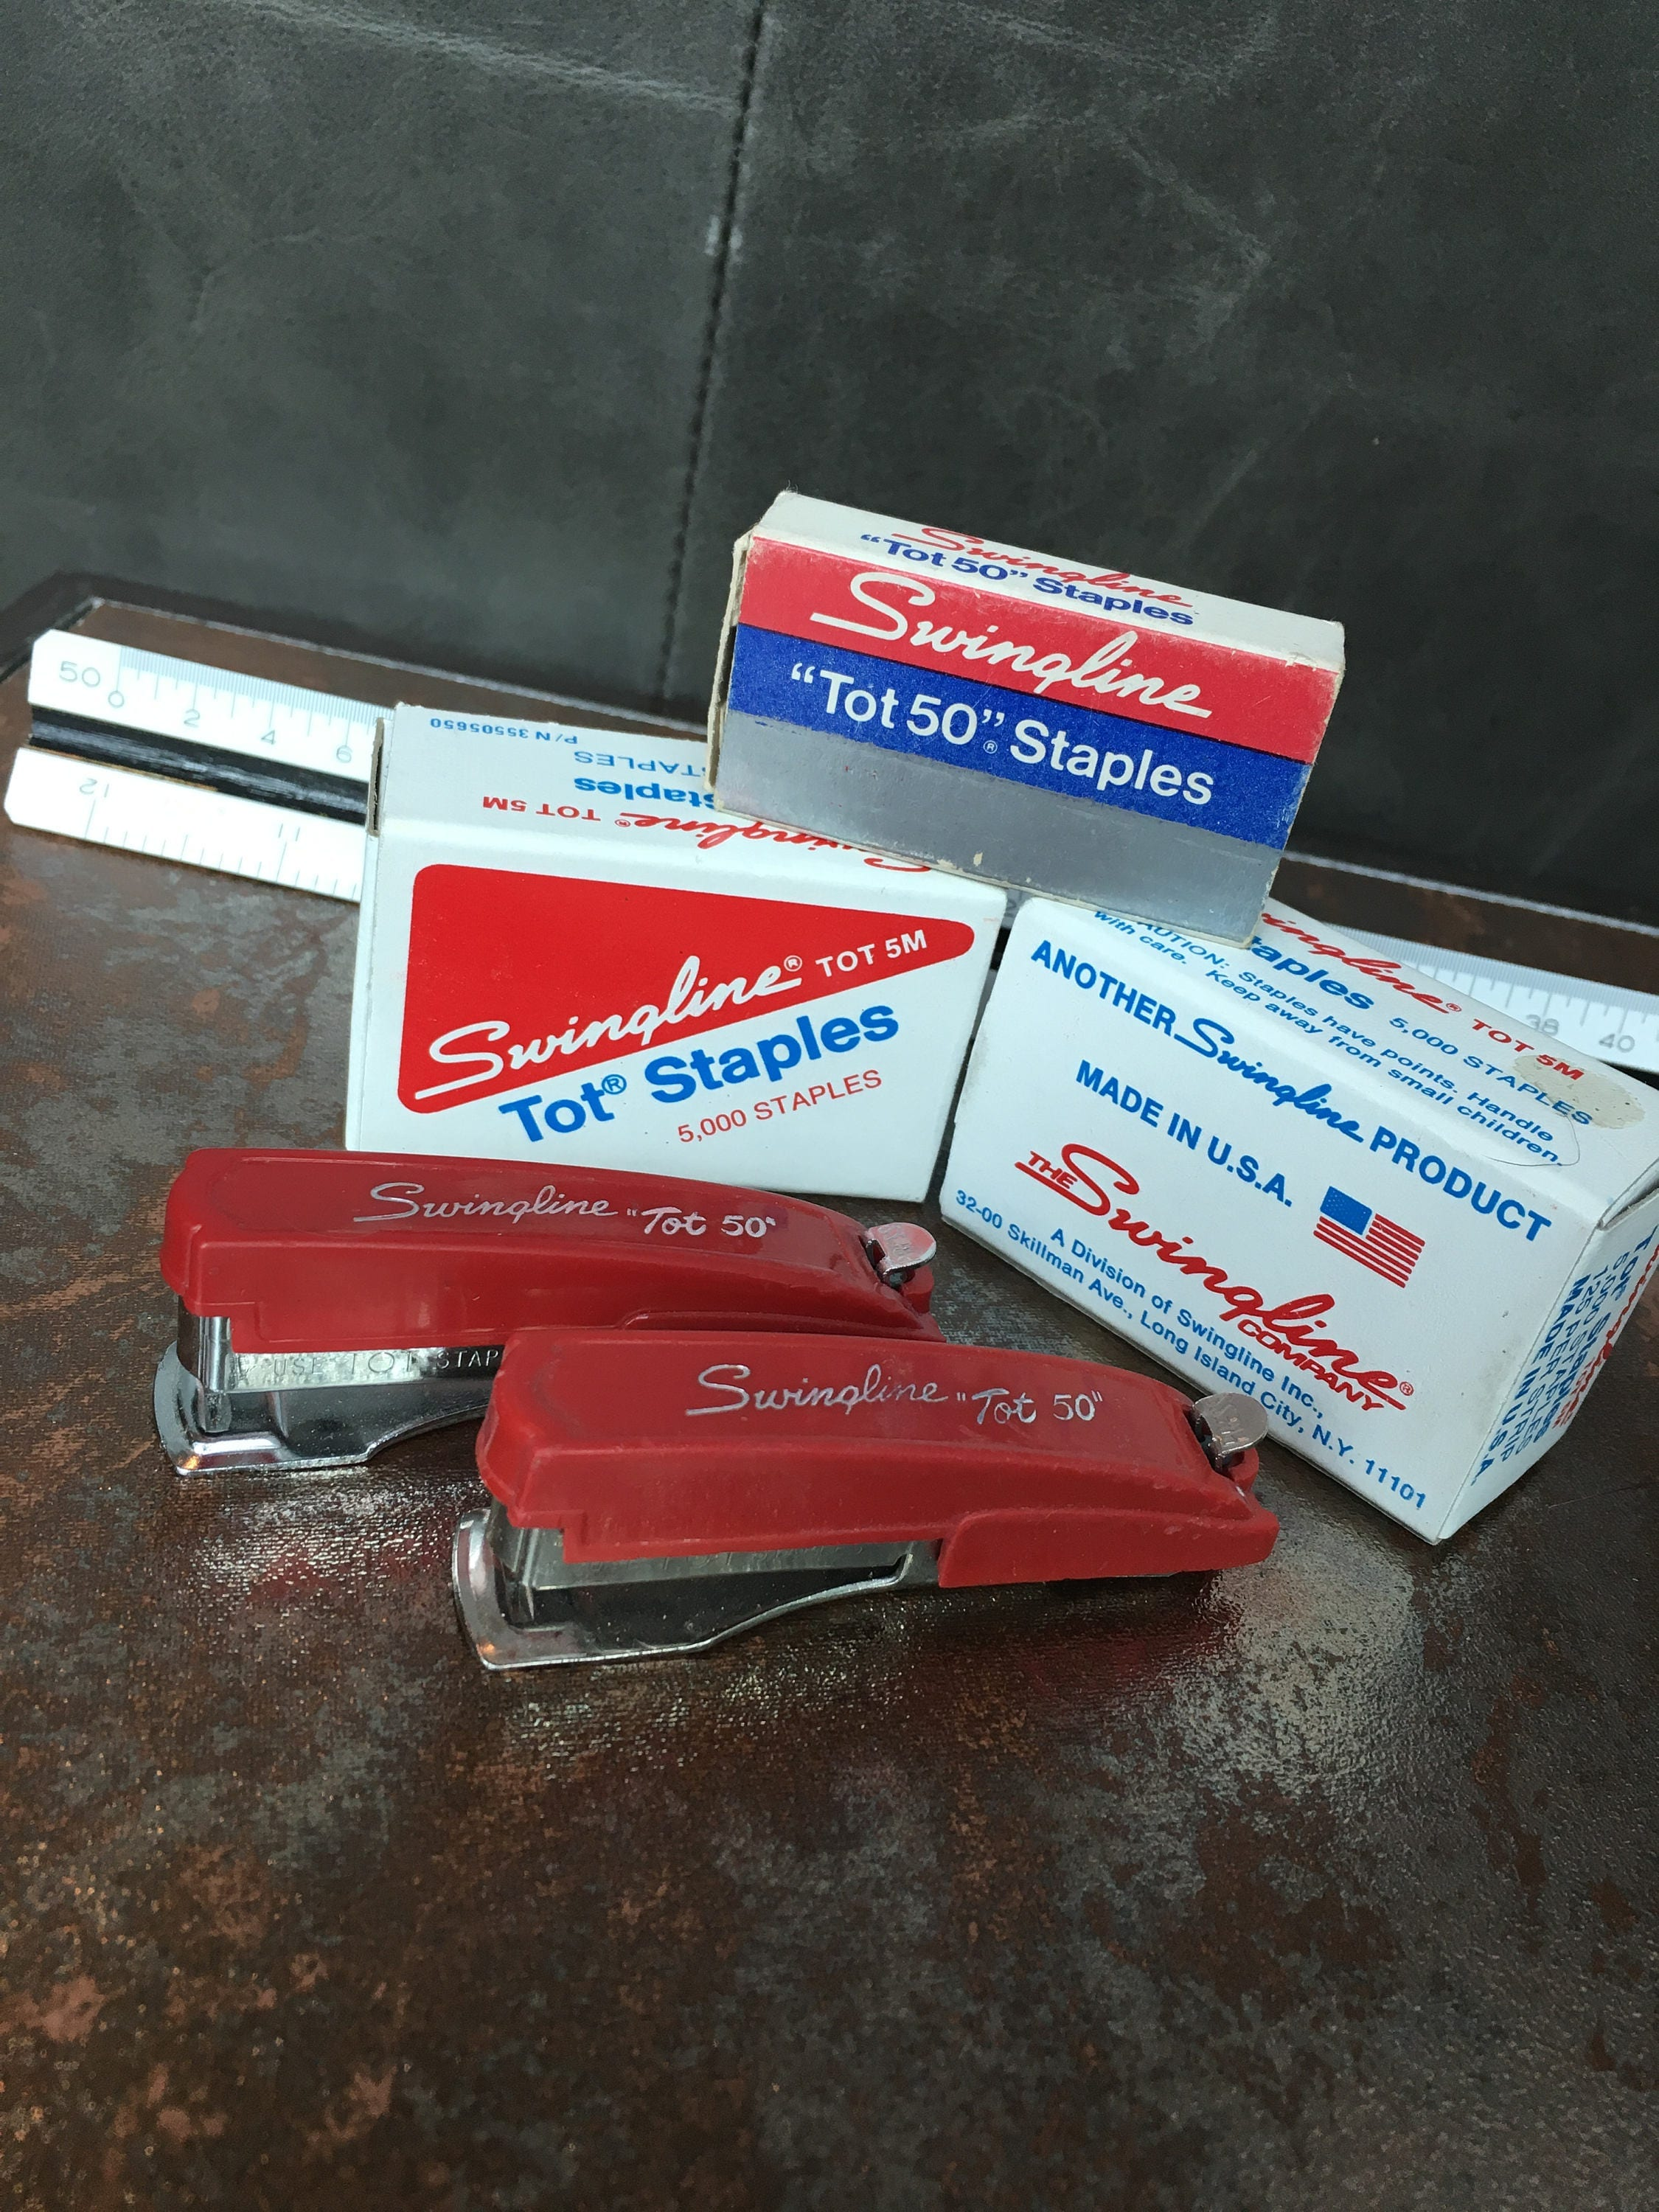 Unique Photos Of Business Card Case Staples – Business Cards and ...